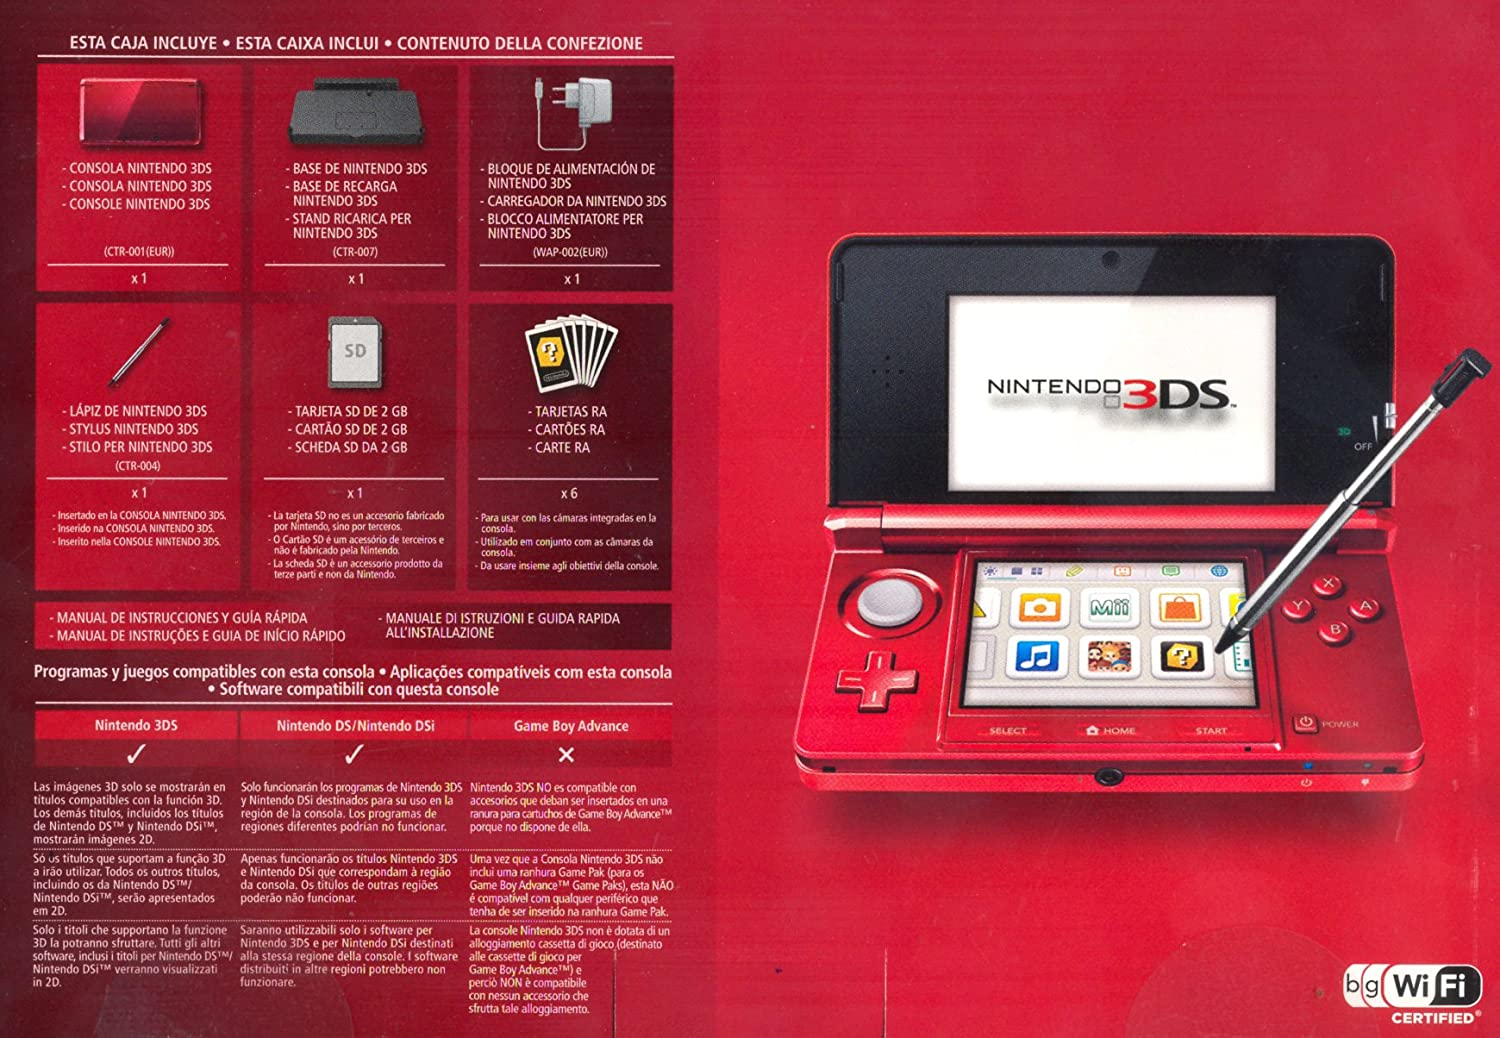 Amazon.com: NINTENDO 2200249 CONSOLE 3DS METALLIC RED: Video ...